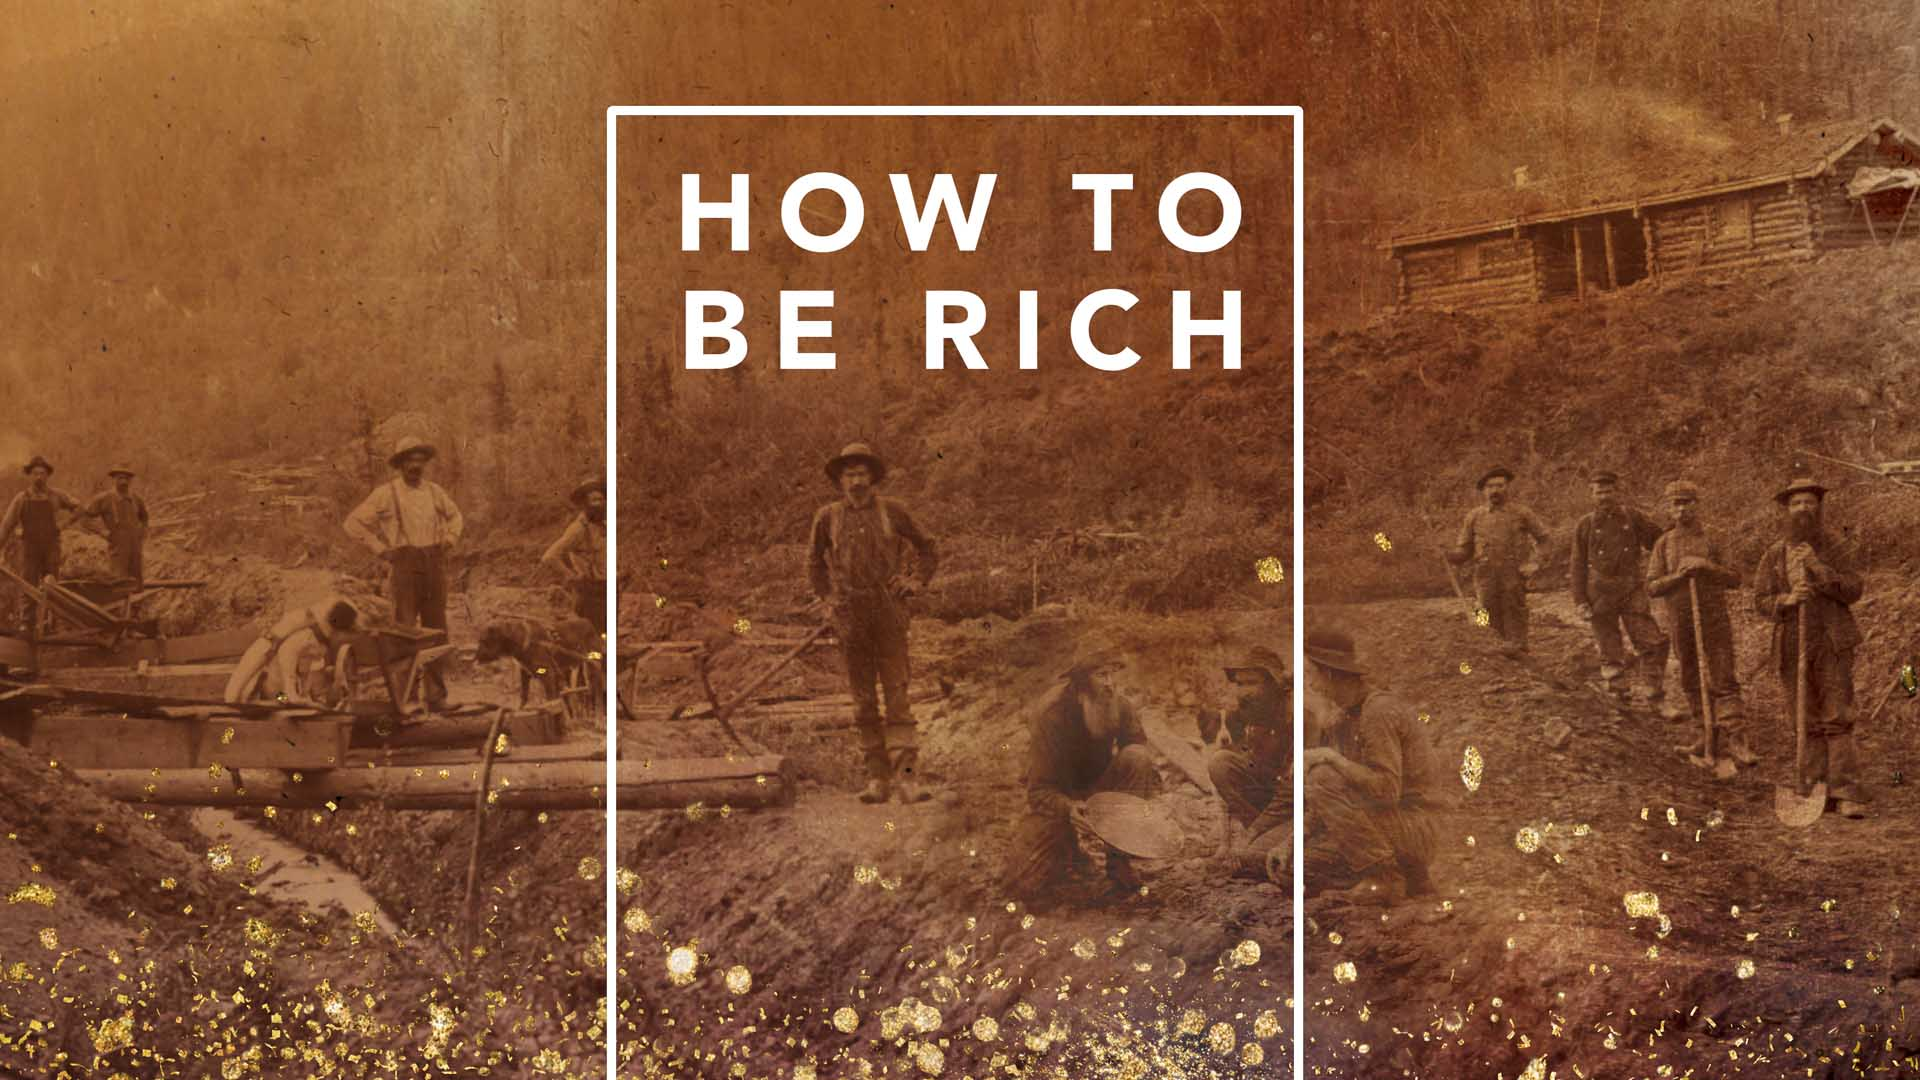 How to be Rich: What's Your Story?